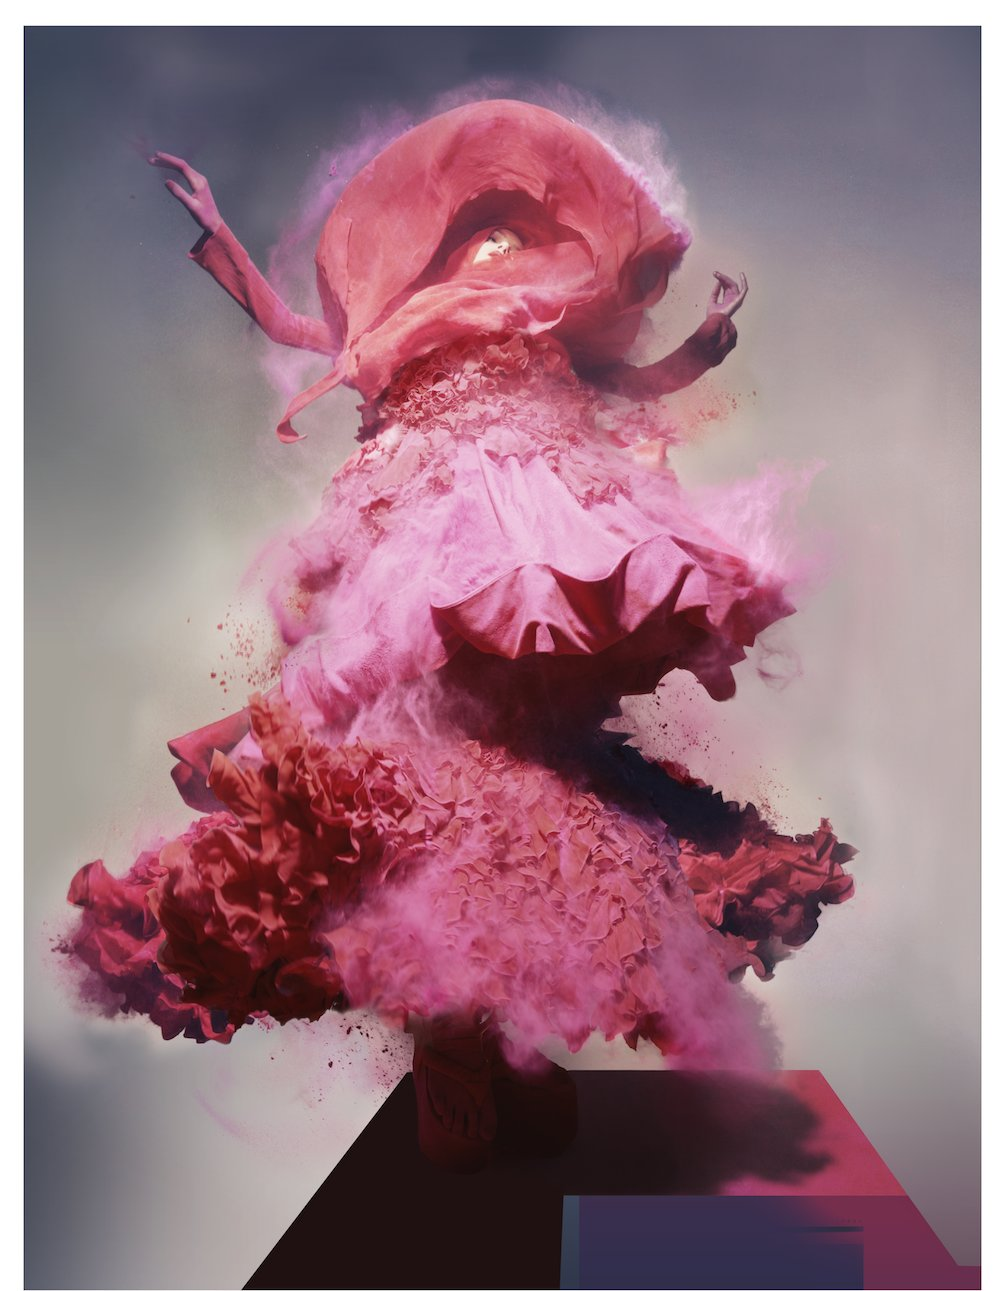 Nick Knight (*1958, Great Britain) Lily, 2008. © Nick Knight / Courtesy of Christophe Guye Galerie